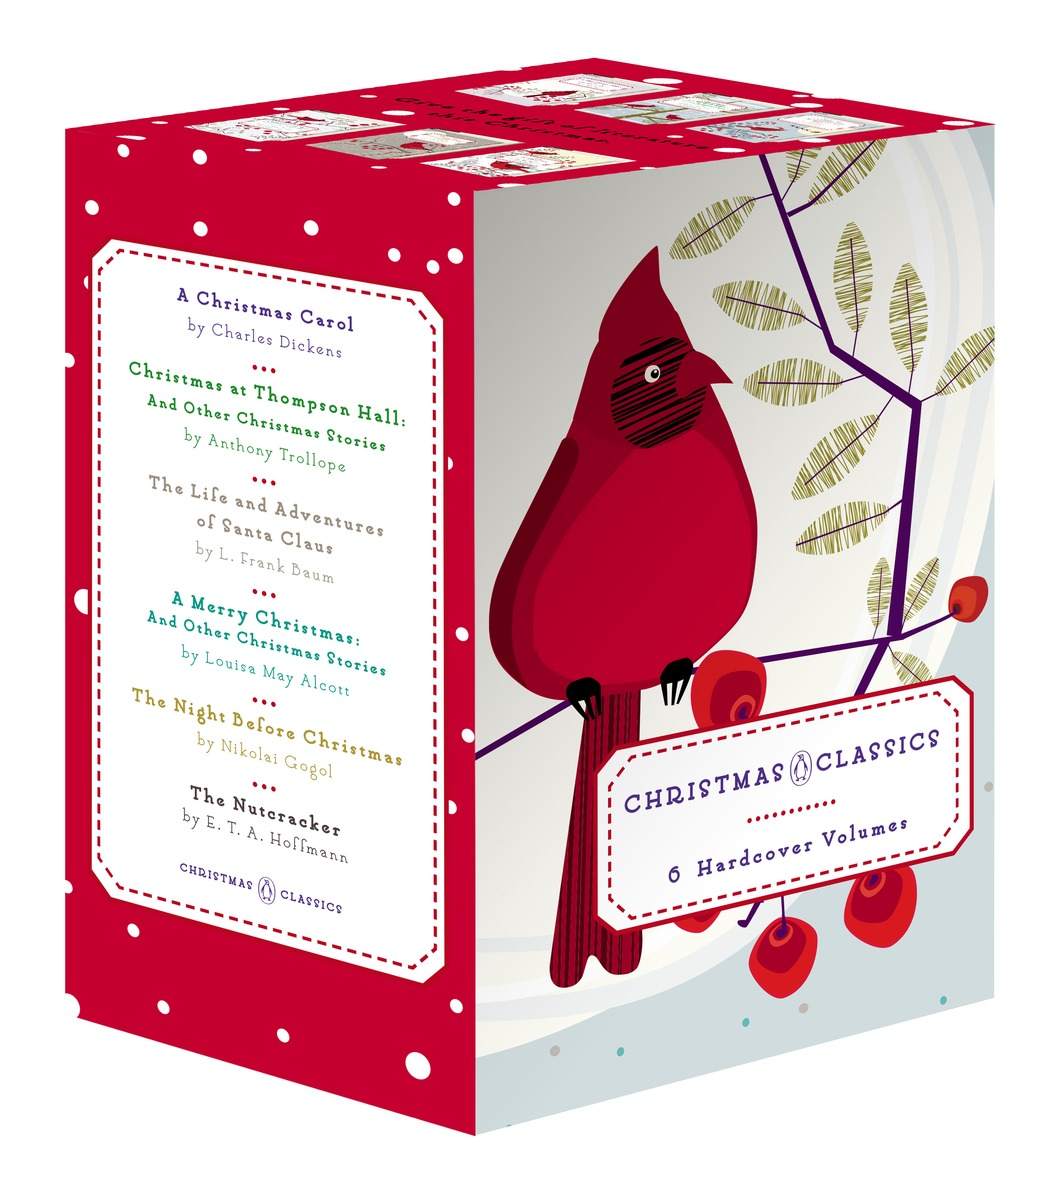 Penguin Christmas Classics 6-Volume Boxed Set penguin christmas classics 6 volume boxed set